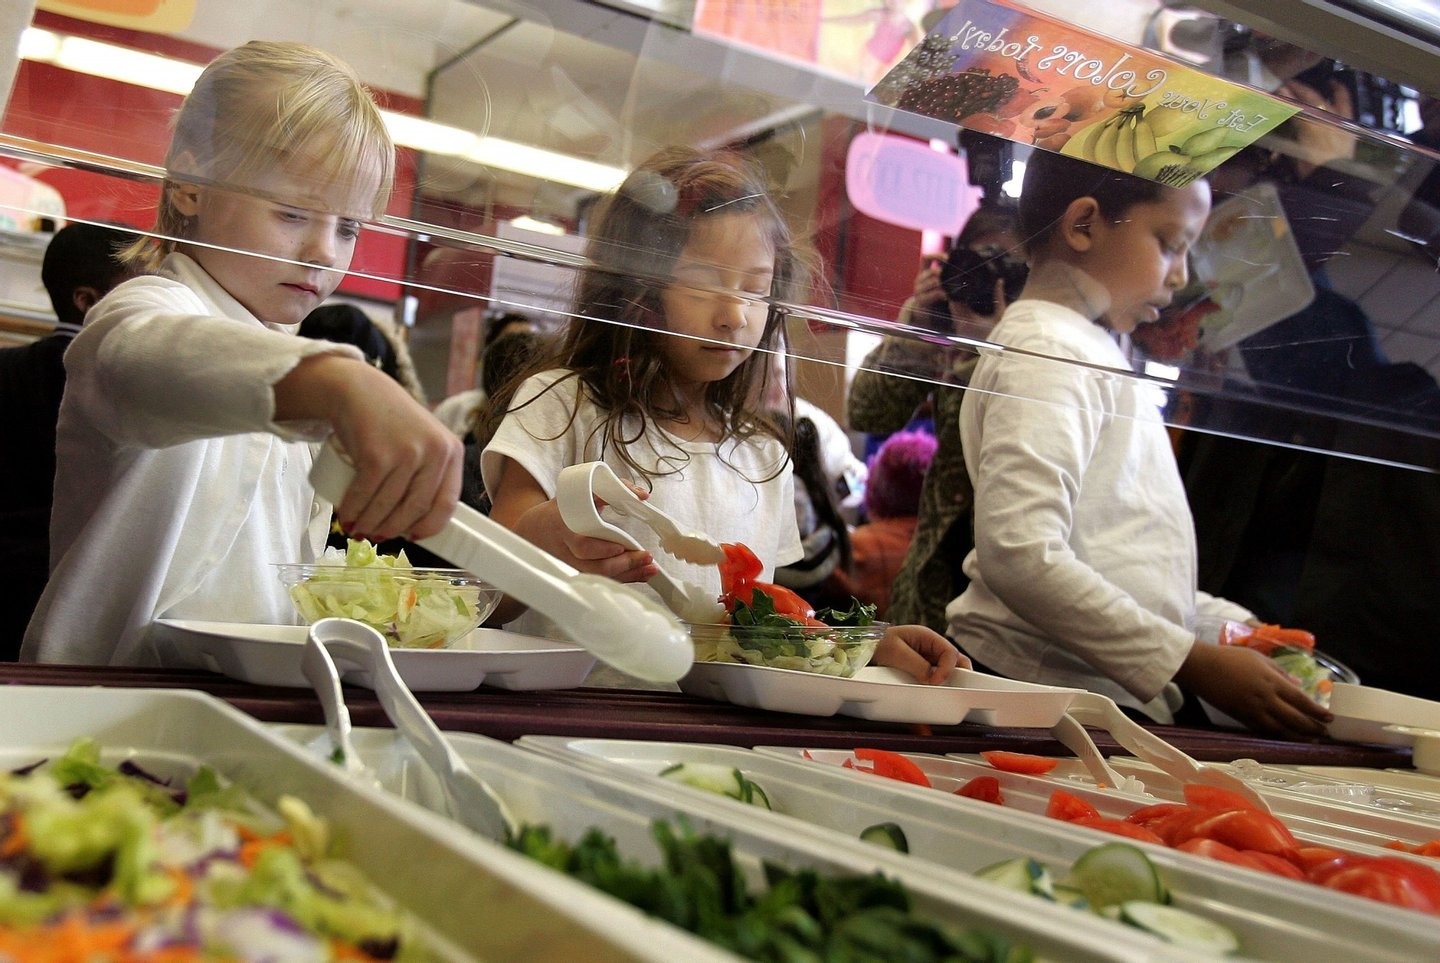 "CHICAGO - MARCH 20: Students at Nettelhorst Elementary School, on lunch, dig into a salad bar in the school's lunchroom March 20, 2006 in Chicago, Illinois. U.S. Senator Dick Durbin (D-IL) stopped by the school to visit the new lunch program called, ""Cool Foods,"" as part of the Healthy Schools Campaign. Nettelhorst is one of three Chicago public schools participating in the new lunch program offering salad bars. (Photo by Tim Boyle/Getty Images)"